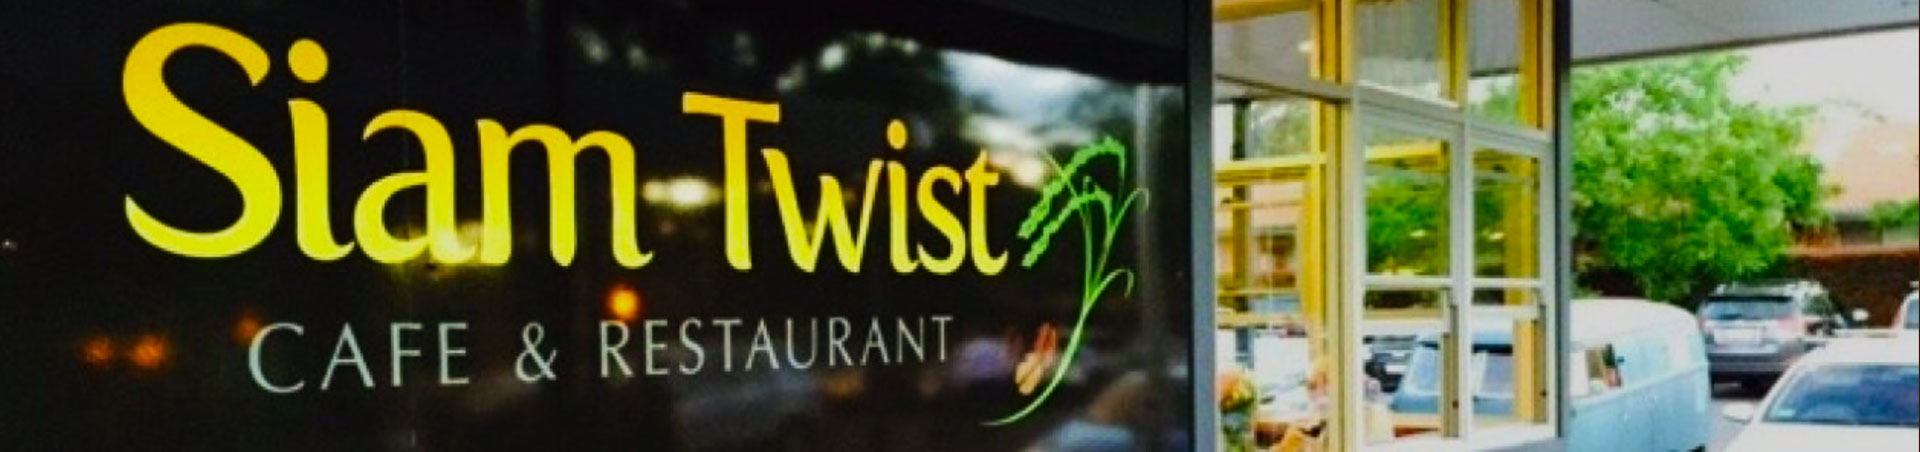 SiamTwist Cafe & Restaurant